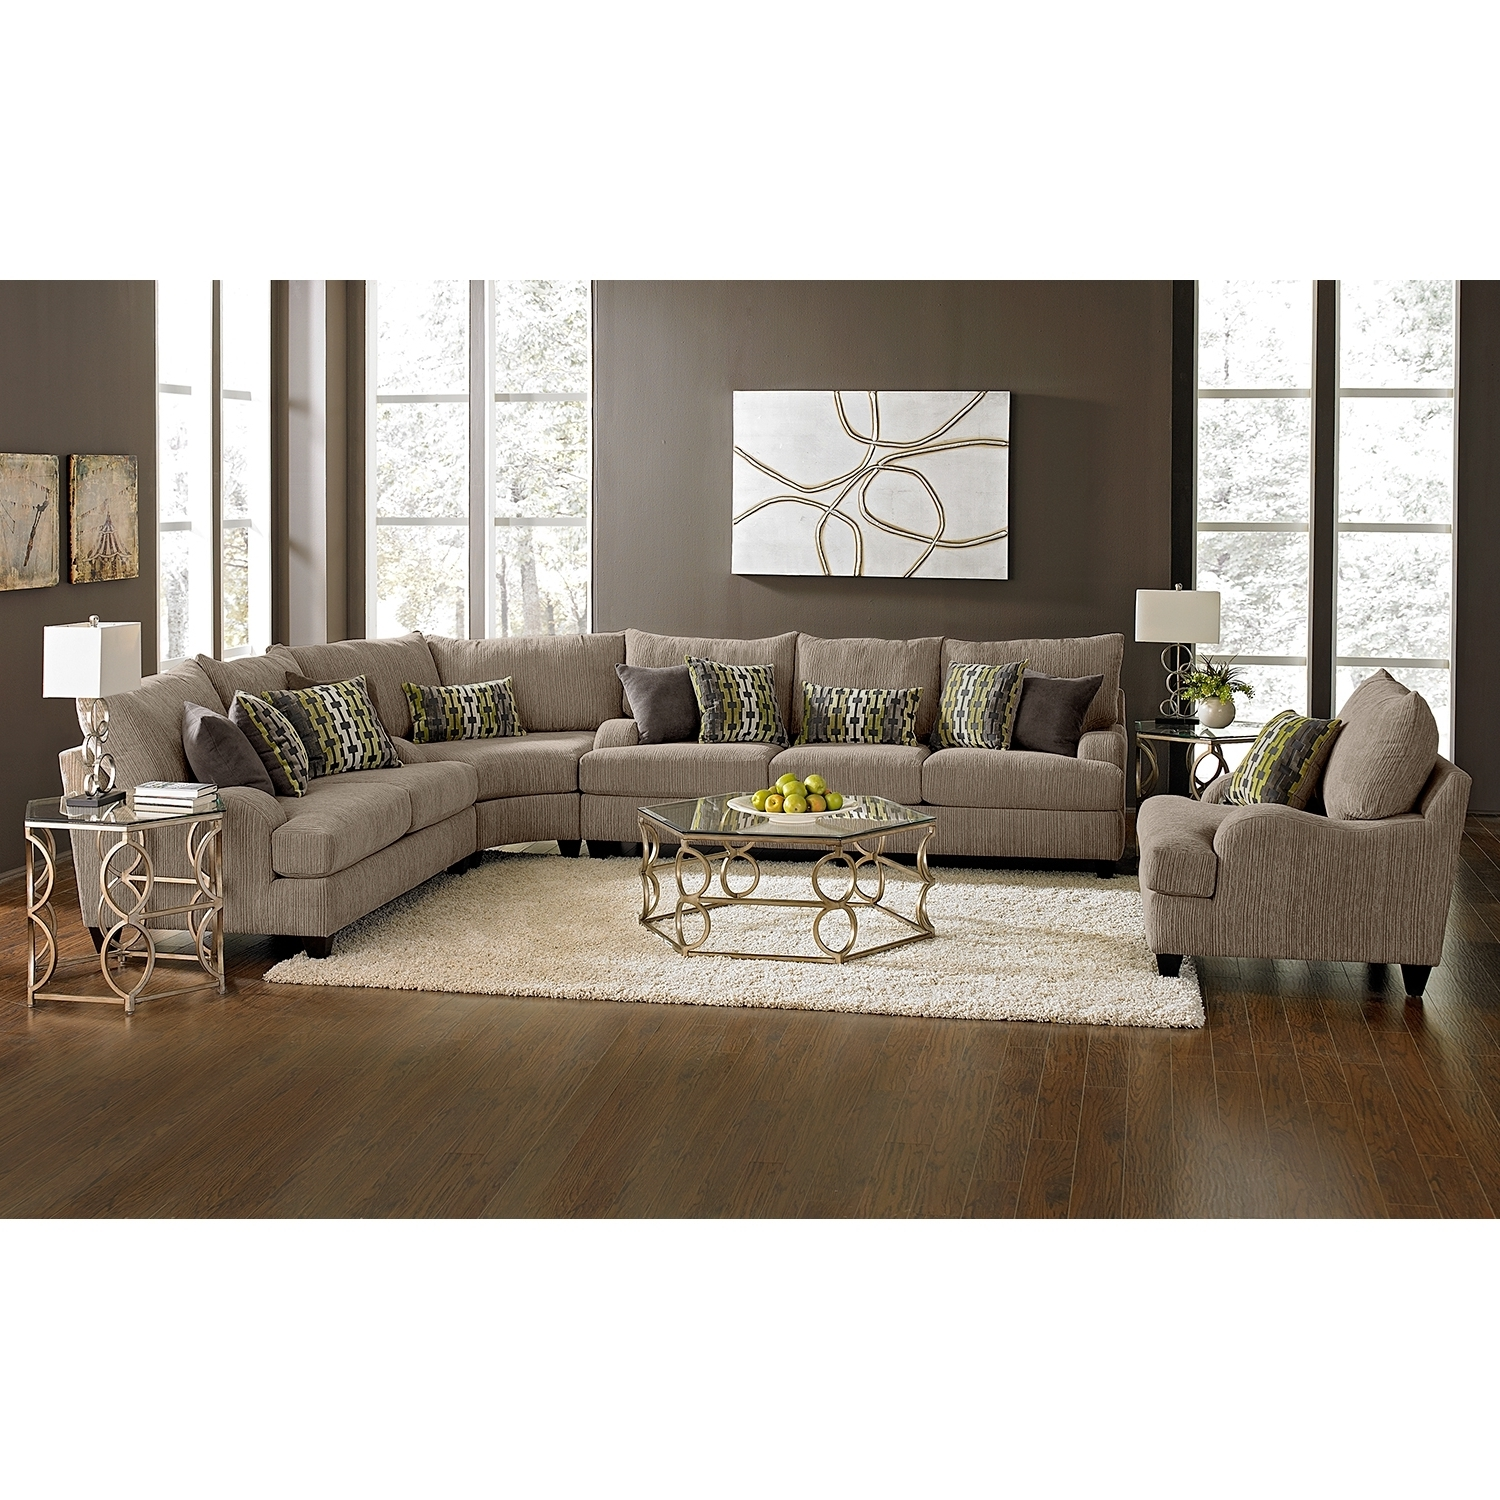 Value City Sectional Sofas Regarding Best And Newest Santa Monica Ii Upholstery 3 Pc (View 13 of 15)